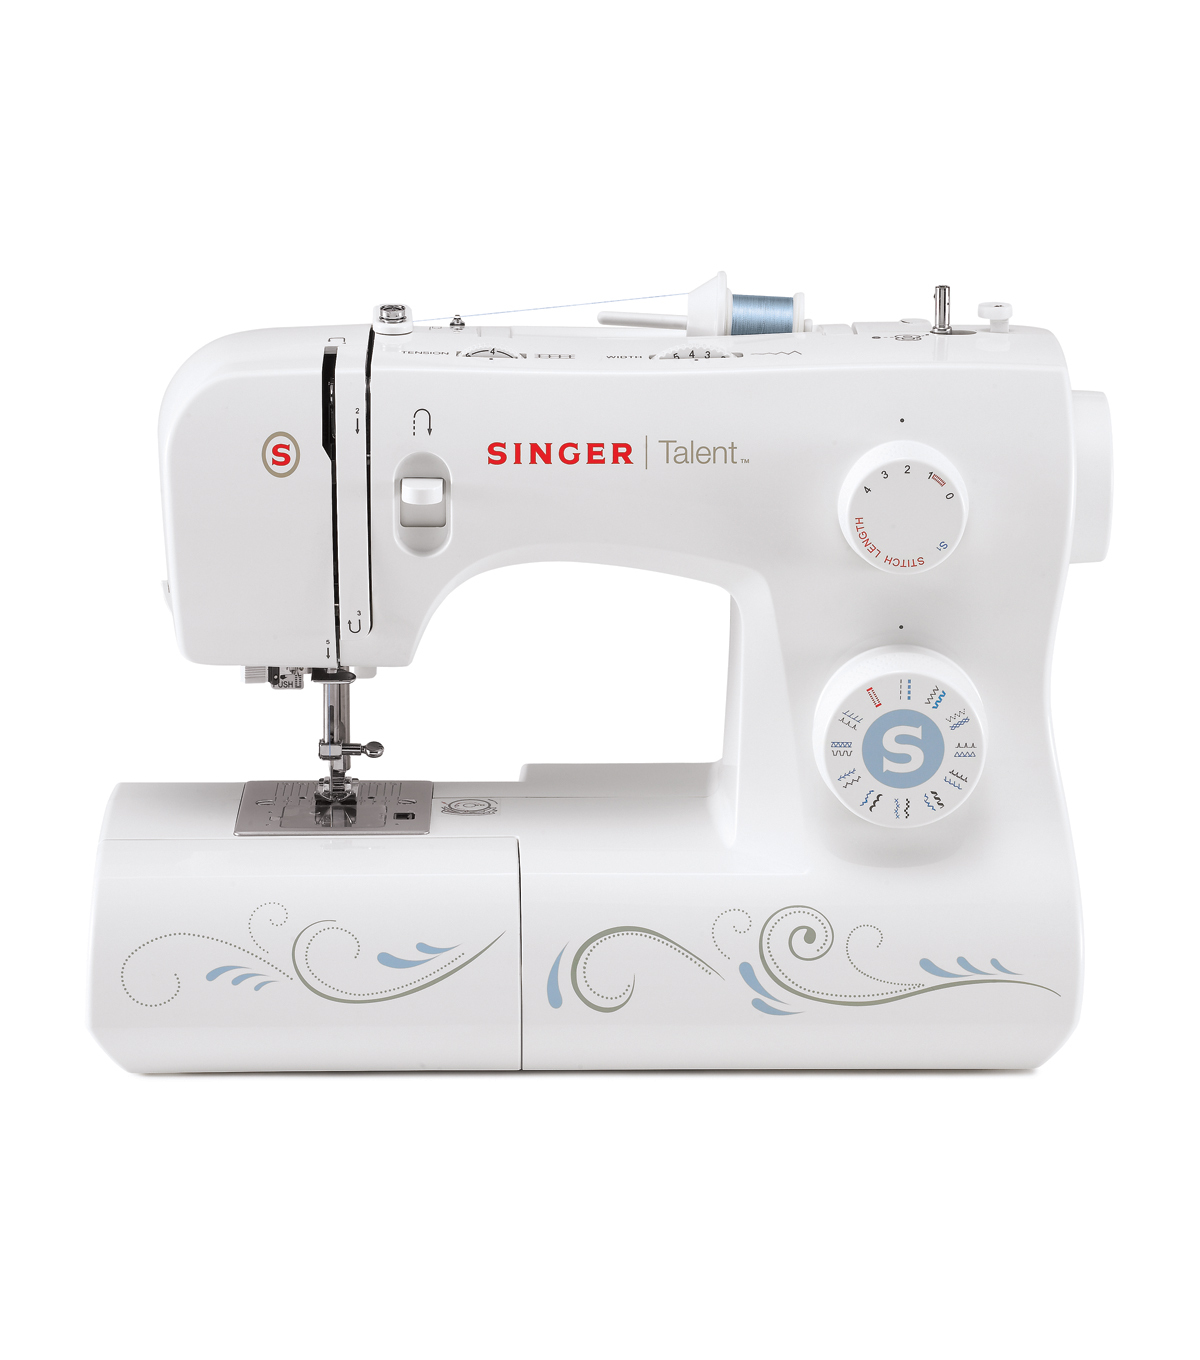 Singer® 3323 Talent Essential Sewing Machine